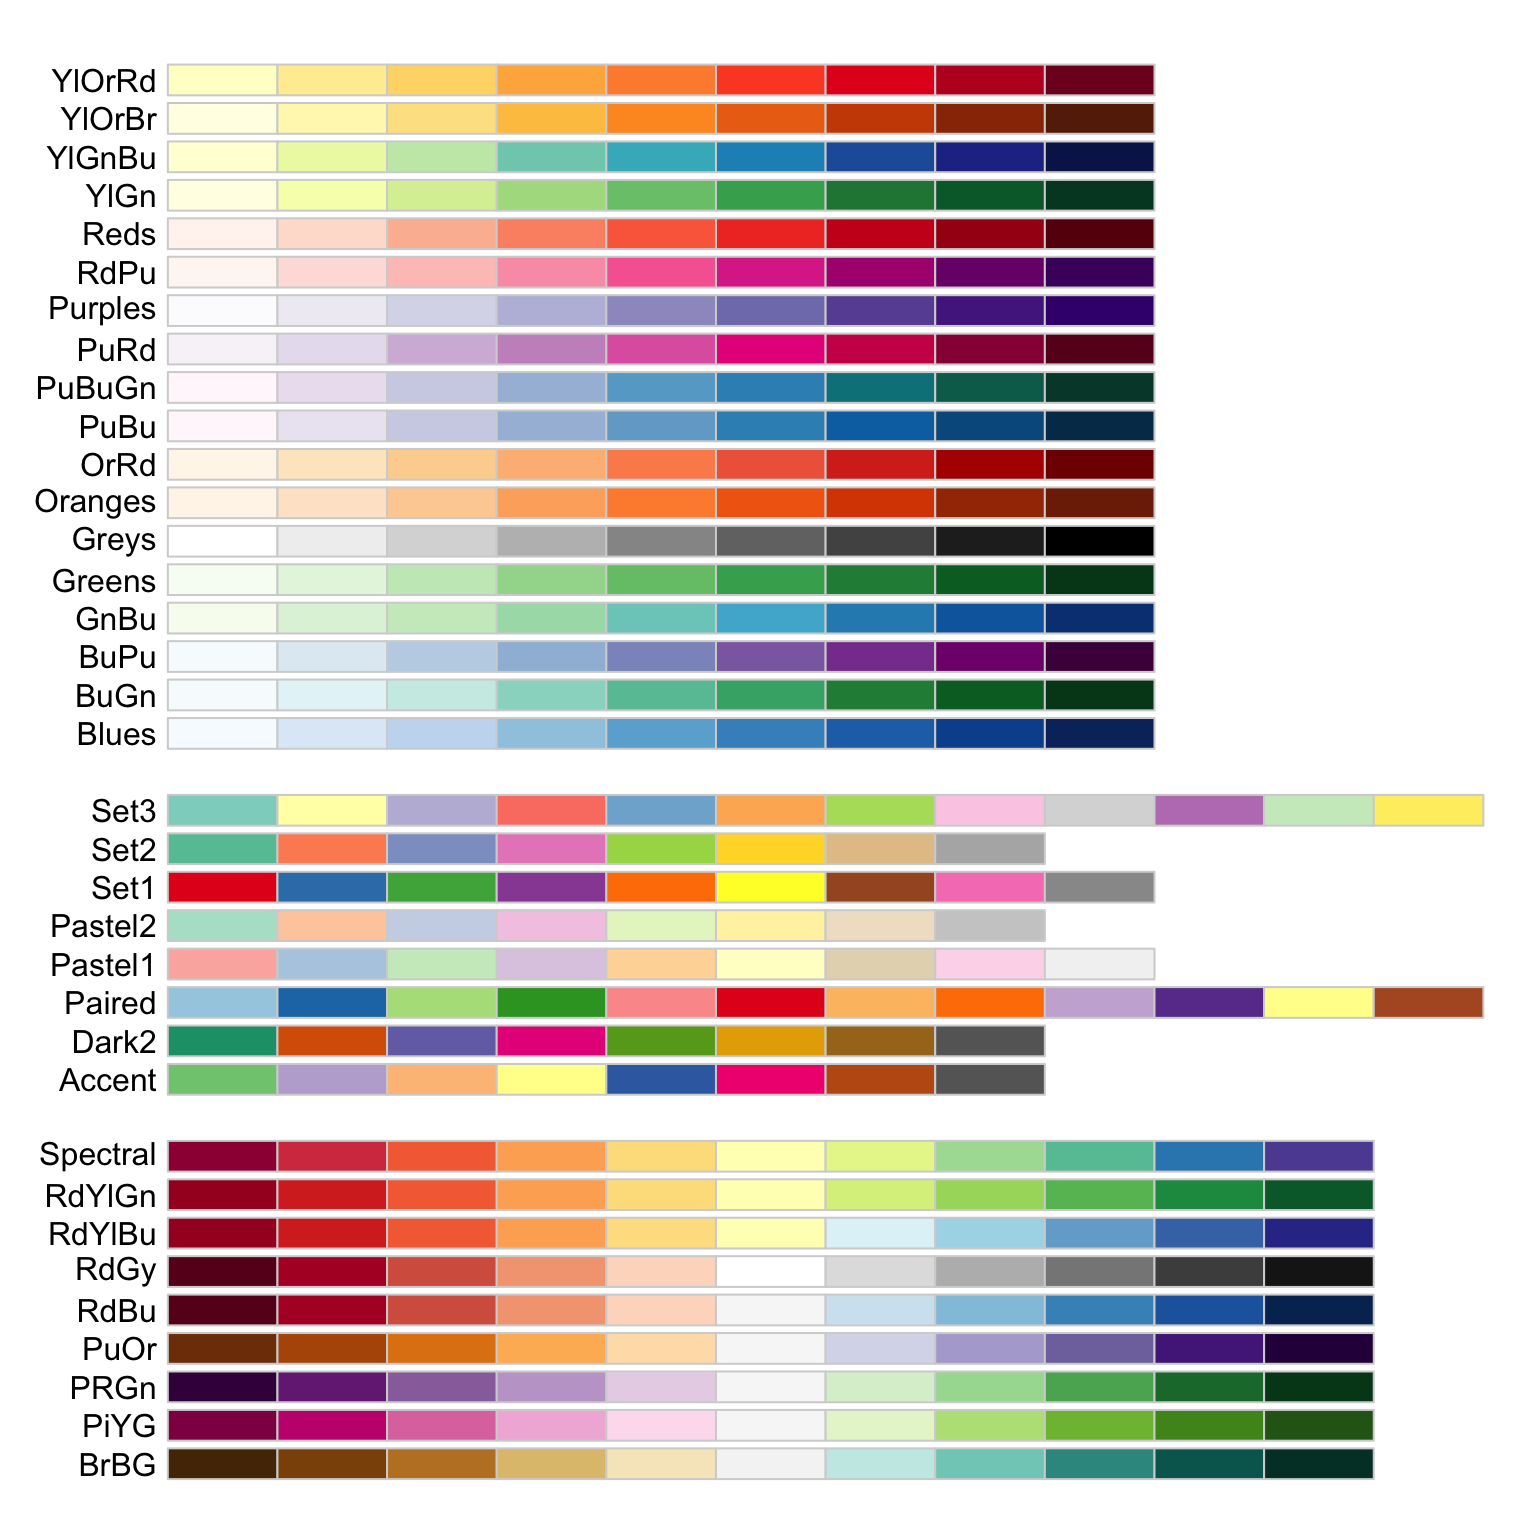 All the ColorBrewer palettes